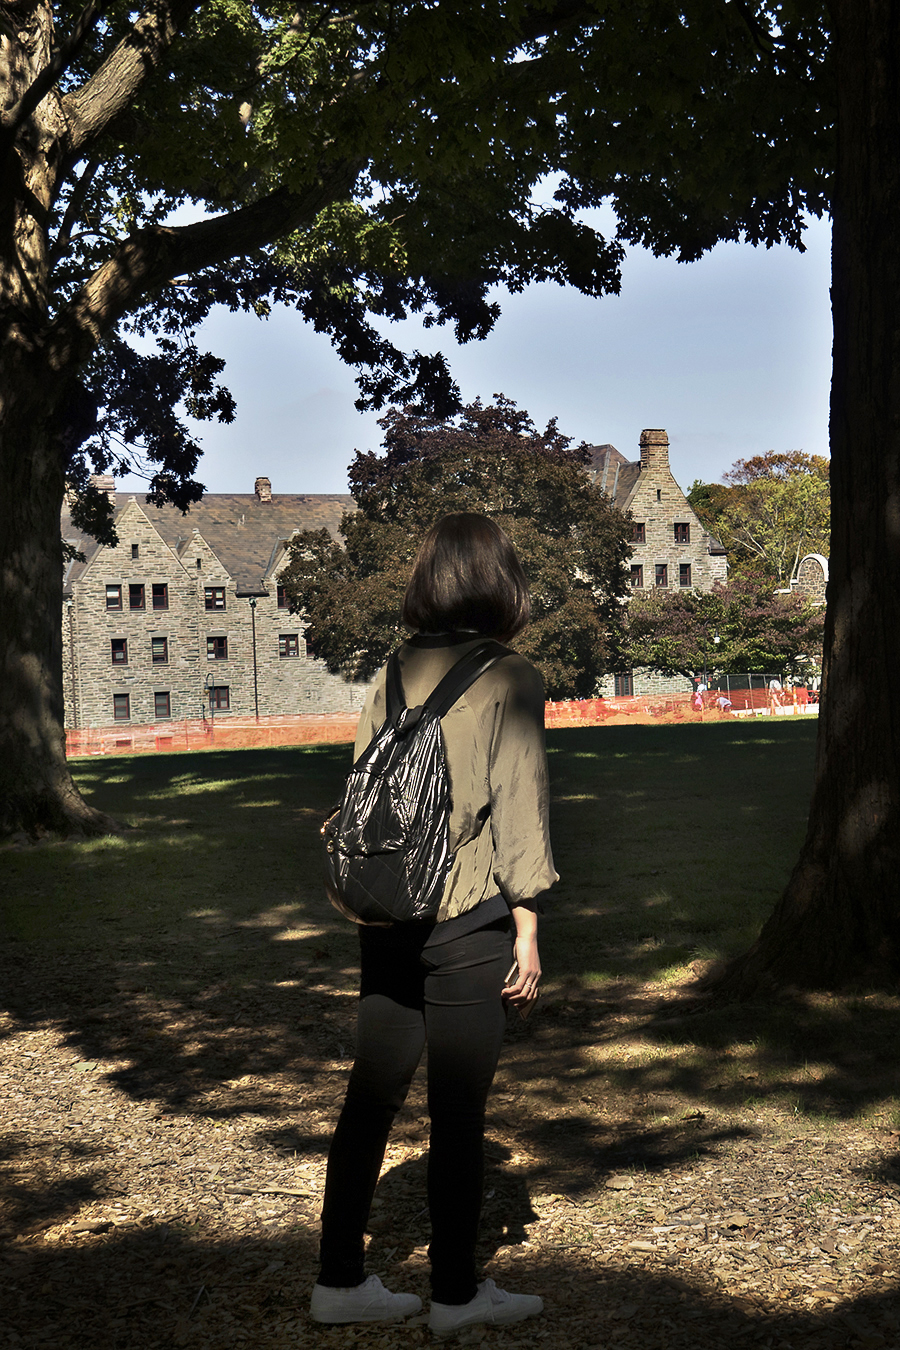 Xuan_Huang_photograpgy_portraits_model_Diana_Feng_BrynMawrCollege_Trees_shadow